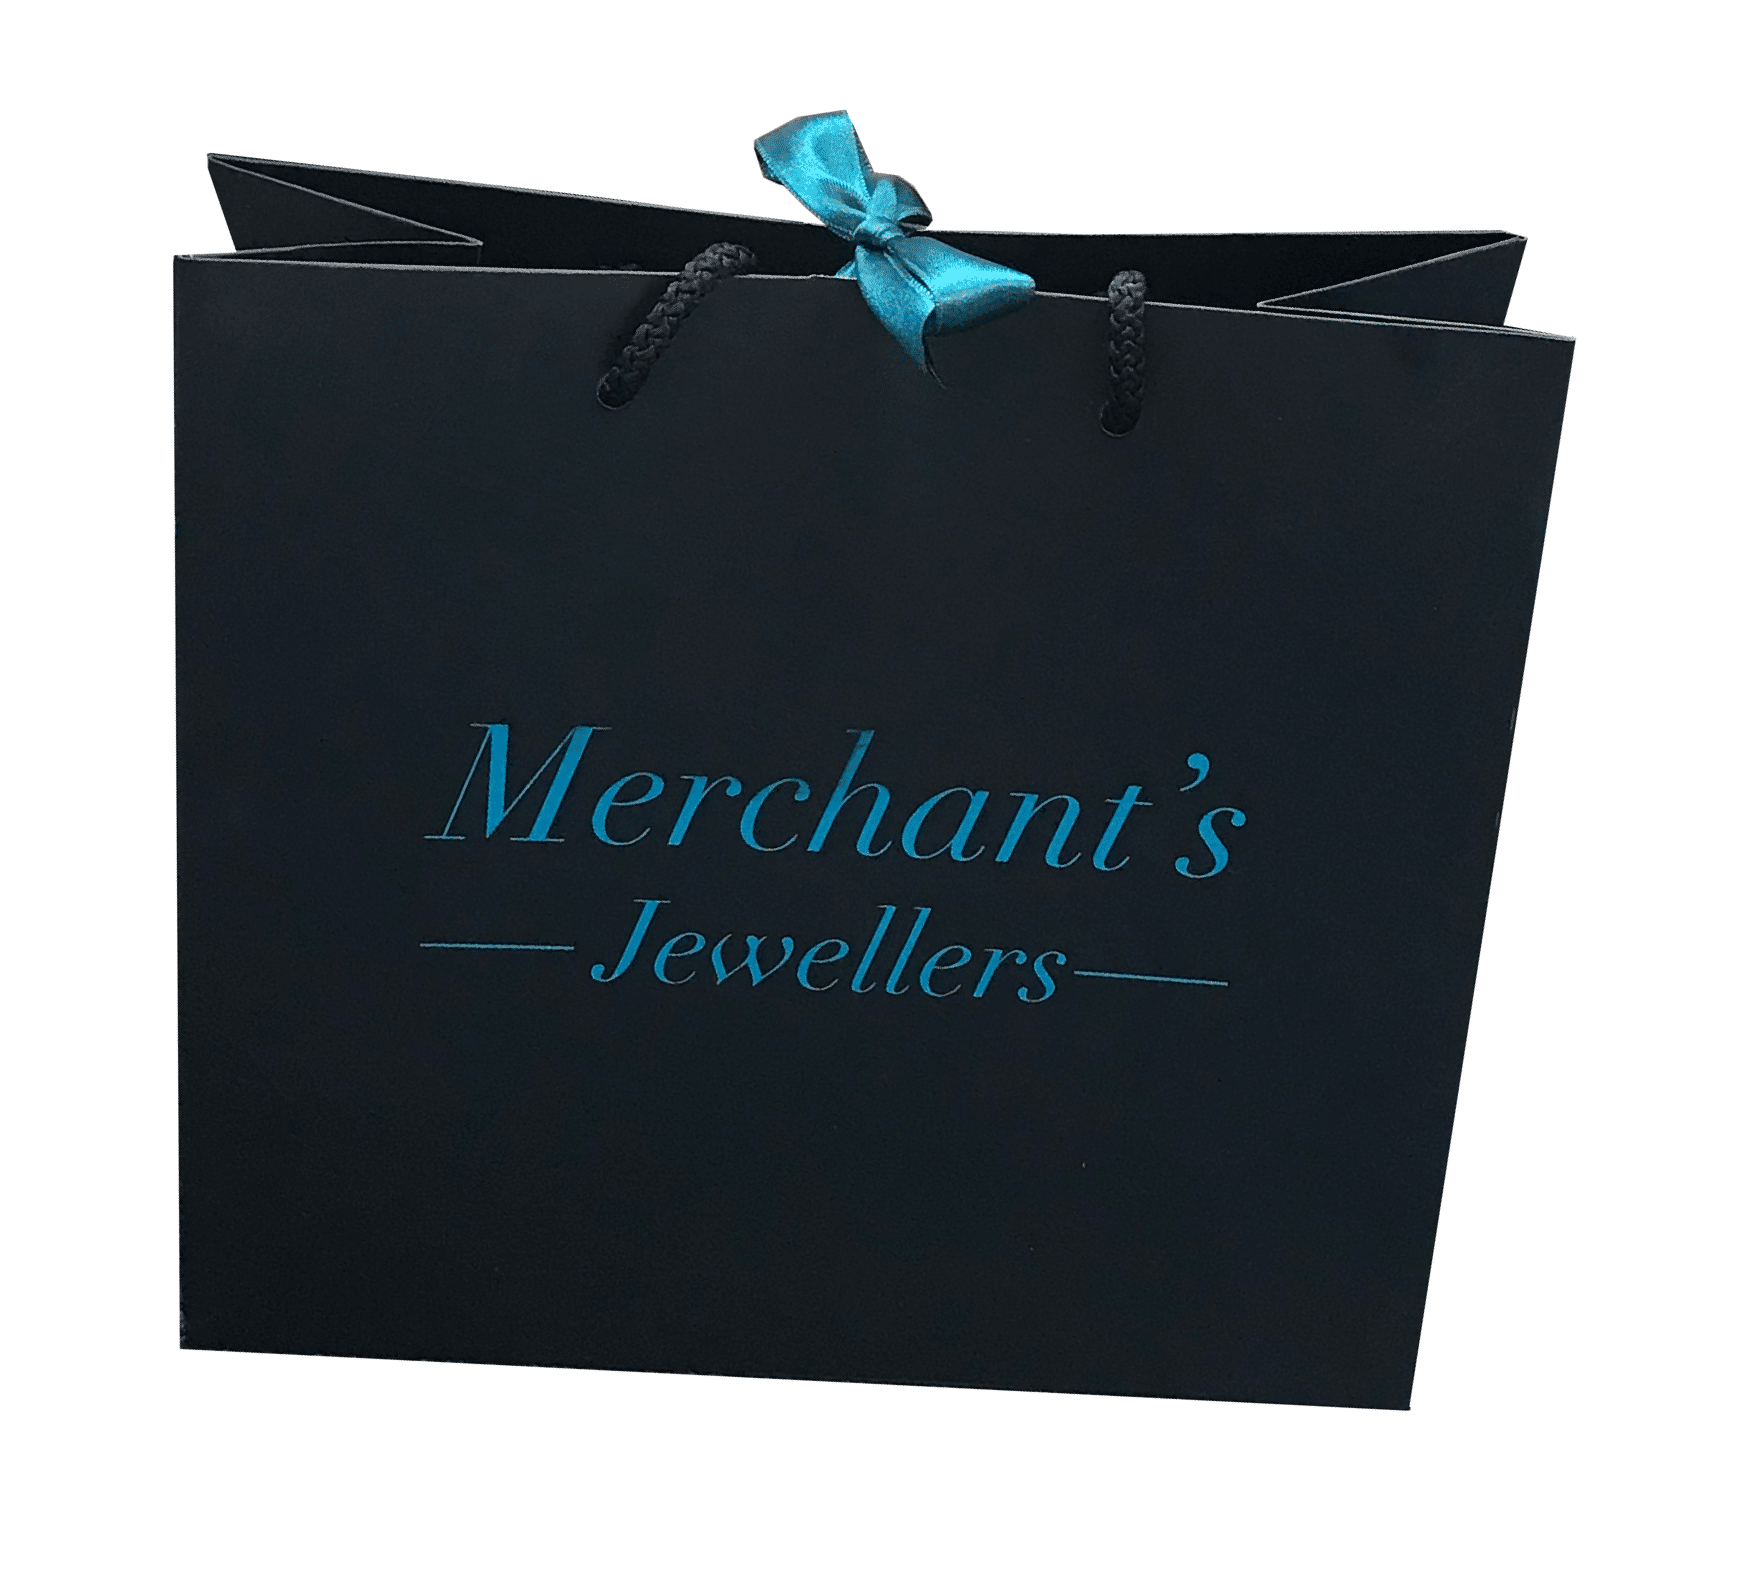 Merchants Jewellers - Luxury rope handle carrier bags. Ribbon handle paper carrier bags. Luxury boutique style bags. Gift Bags